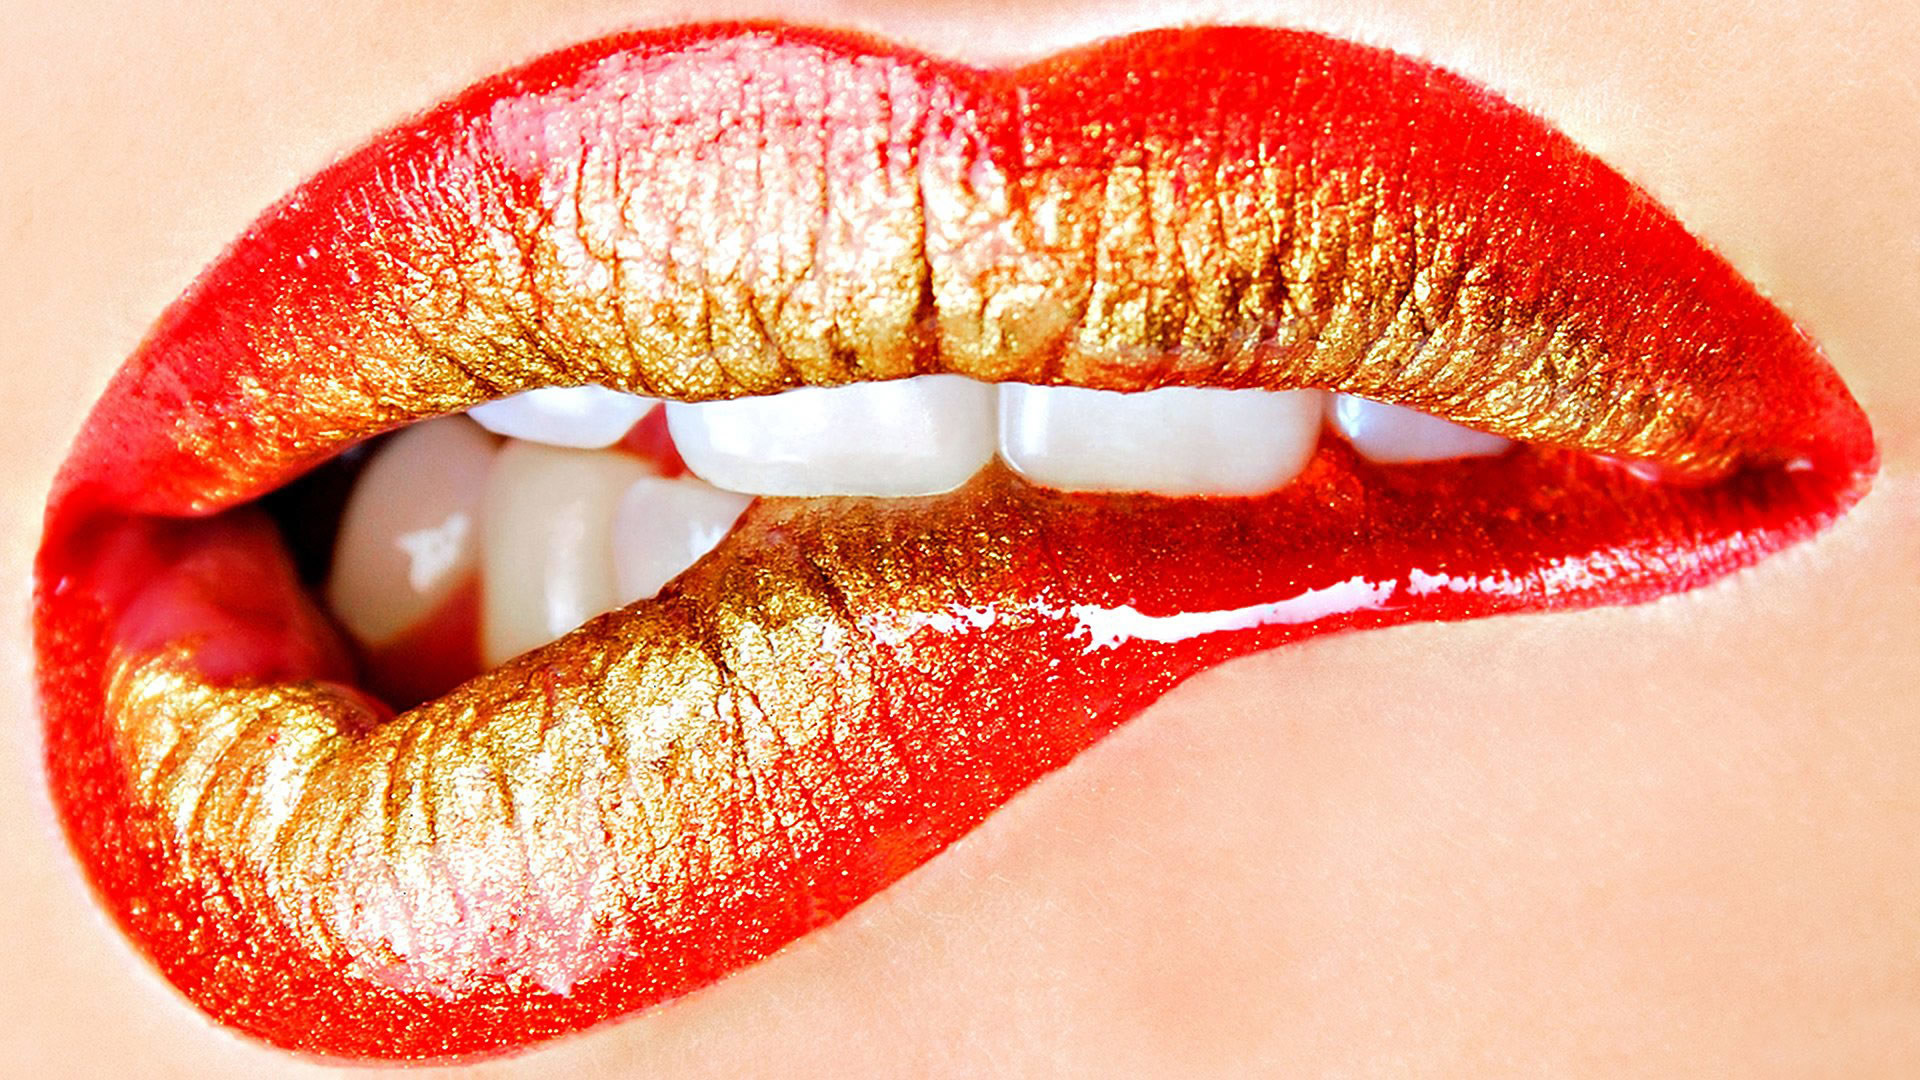 Lips Gold Kiss Lipstick Mouth Red Teeth Free Hd Wallpapers Resolution :  Filesize : kB, Added on July Tagged : lips